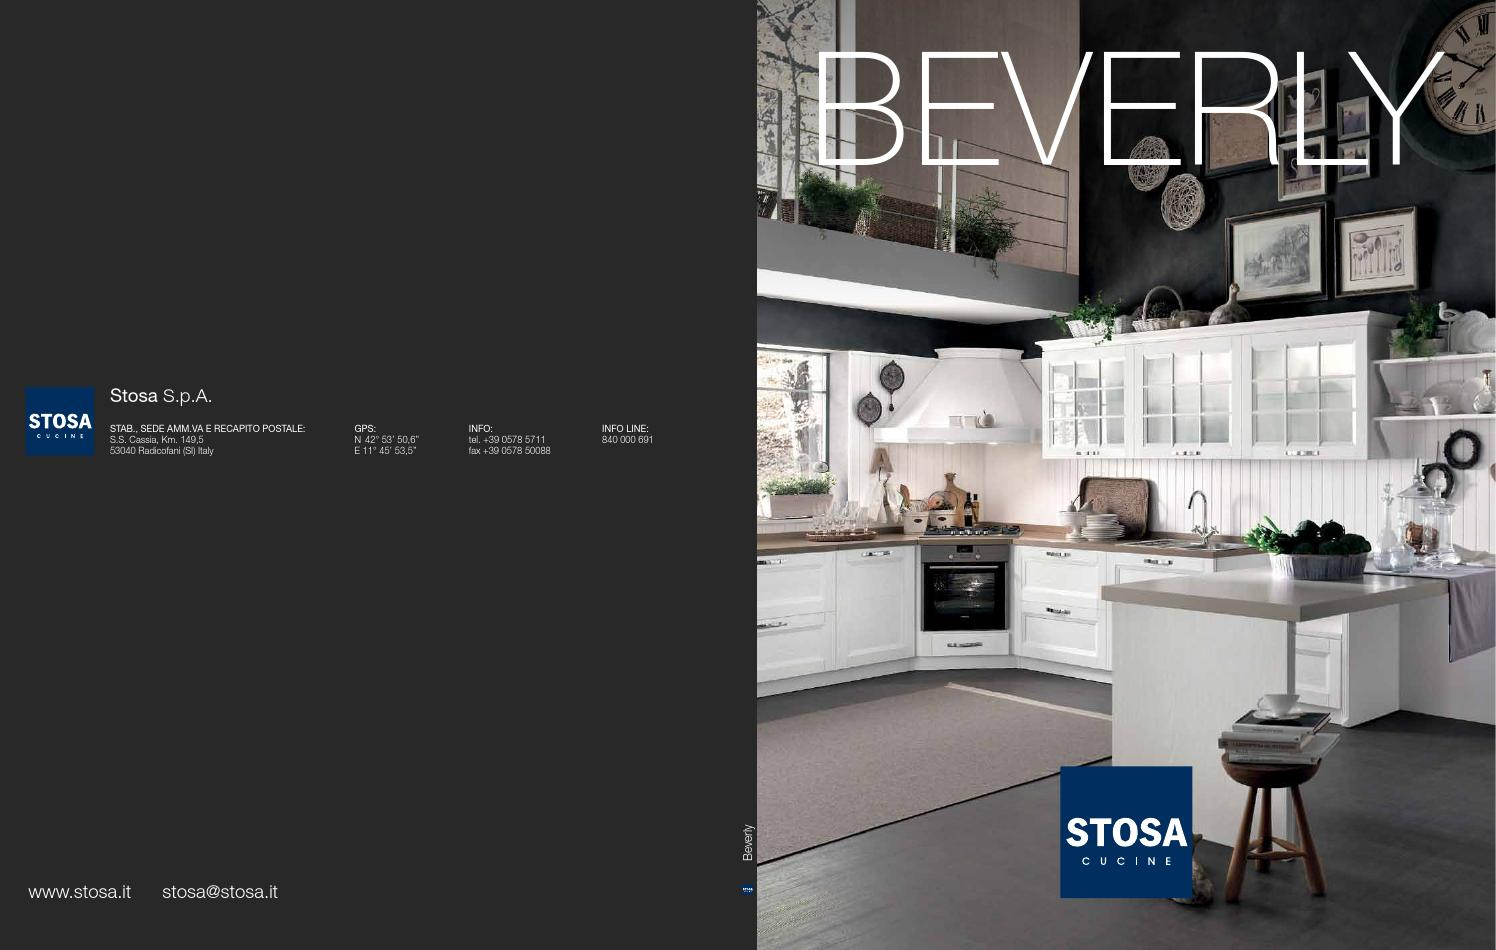 Catalogo cucine stosa beverly by stosa cucine issuu - Cucina beverly stosa ...